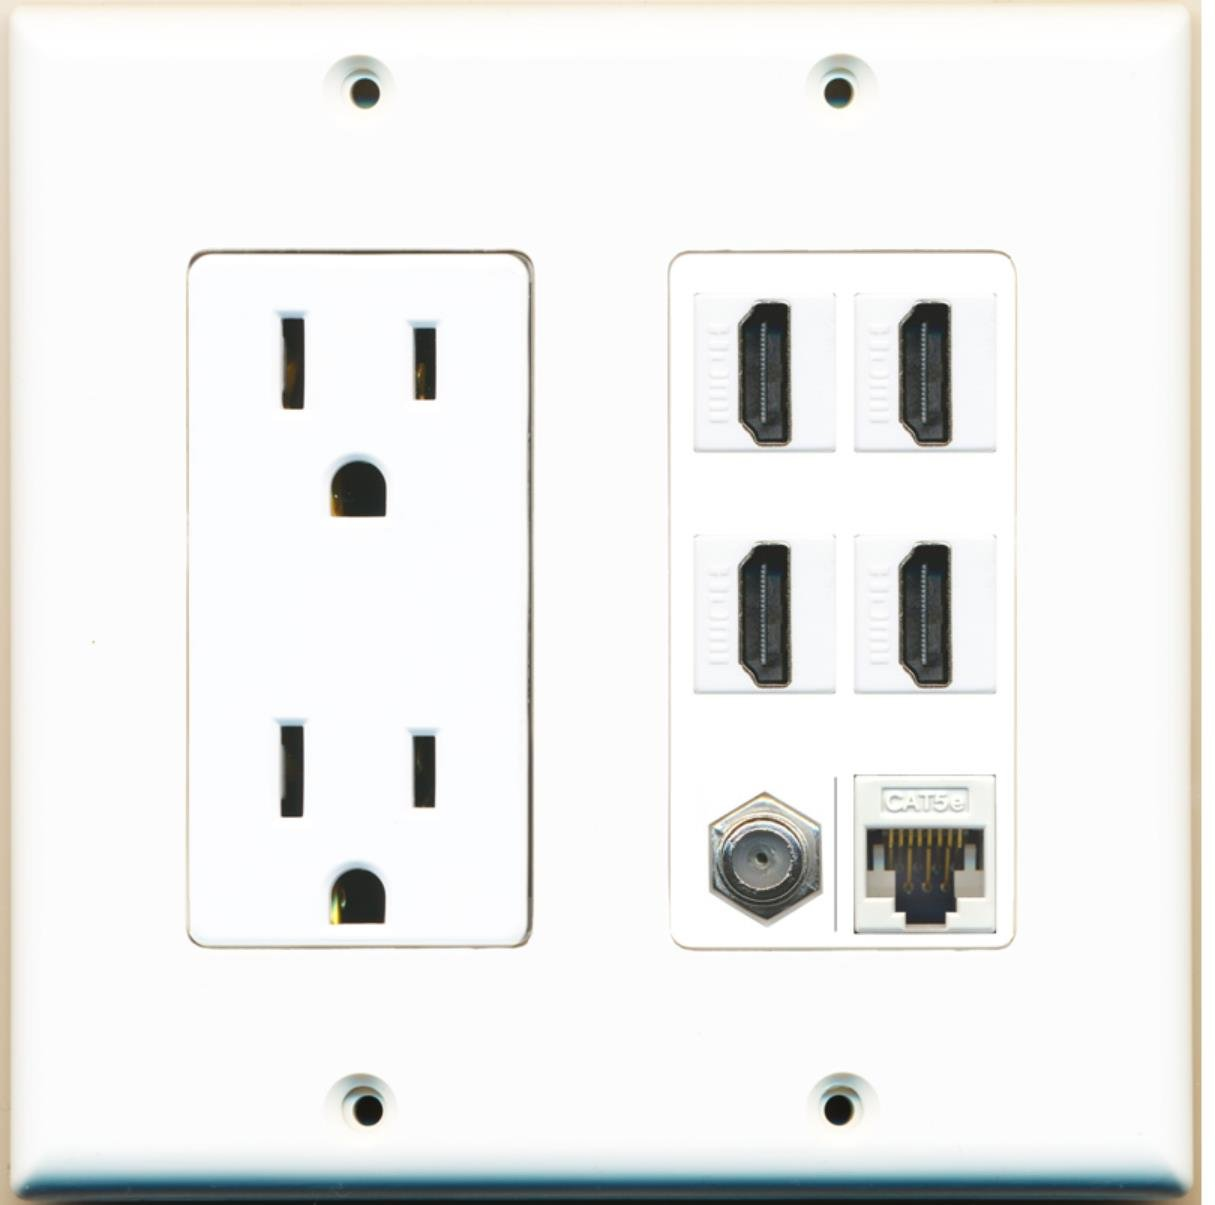 RiteAV 15A Power Outlet, 4 HDMI, 1 Cat5e Ethernet, 1 Coax Cable TV Wall Plate by RiteAV